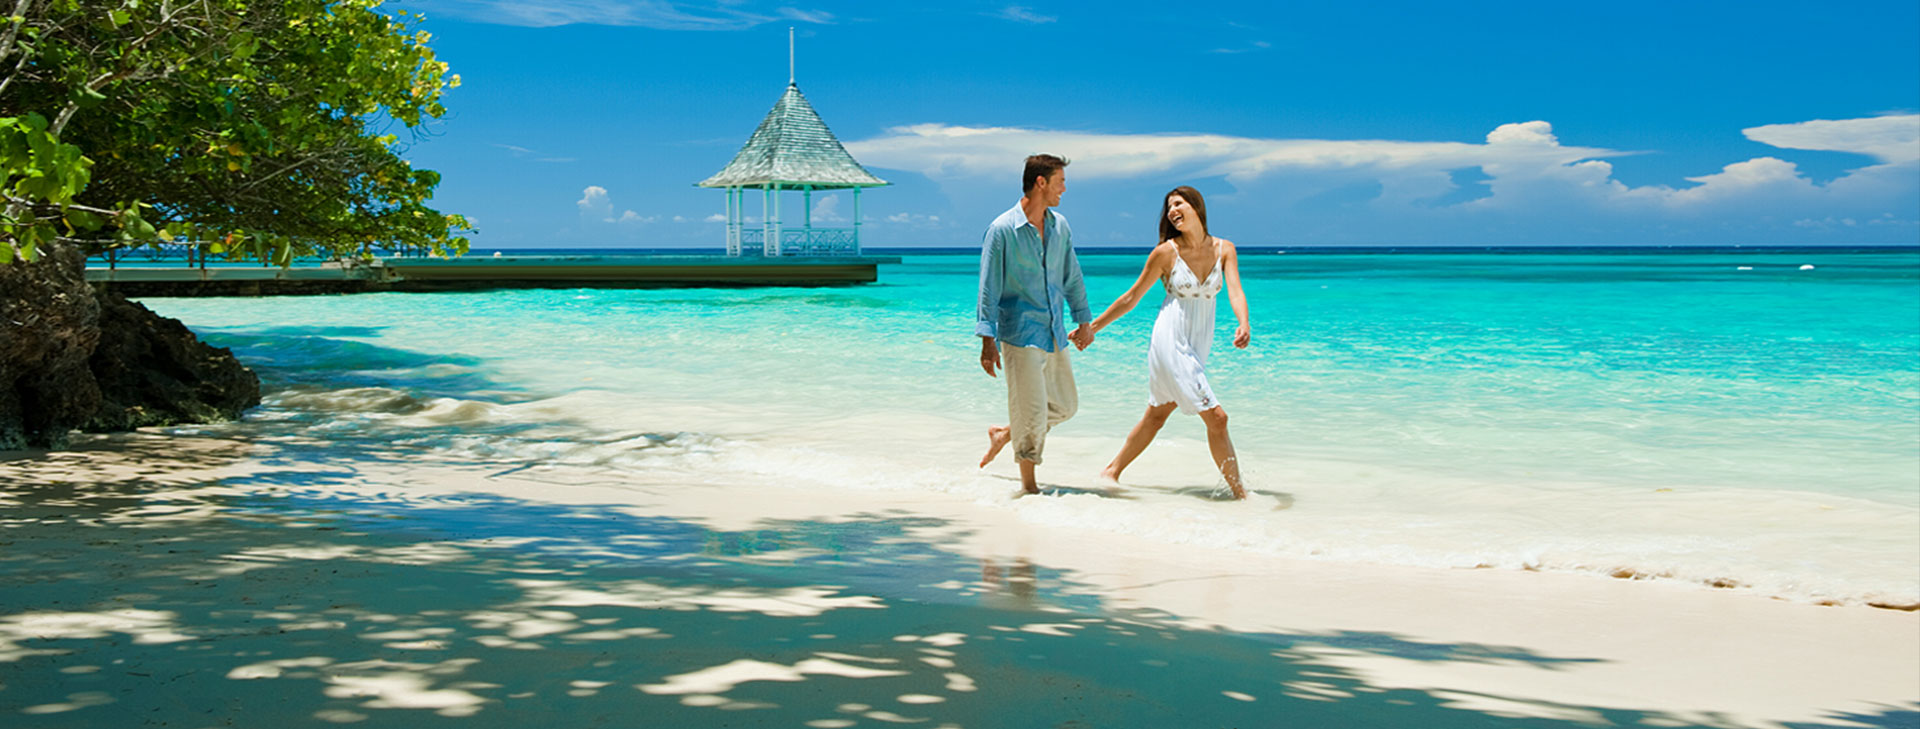 Win A Free 4 Day Vacation Sweepstakes At A Sandals Resort